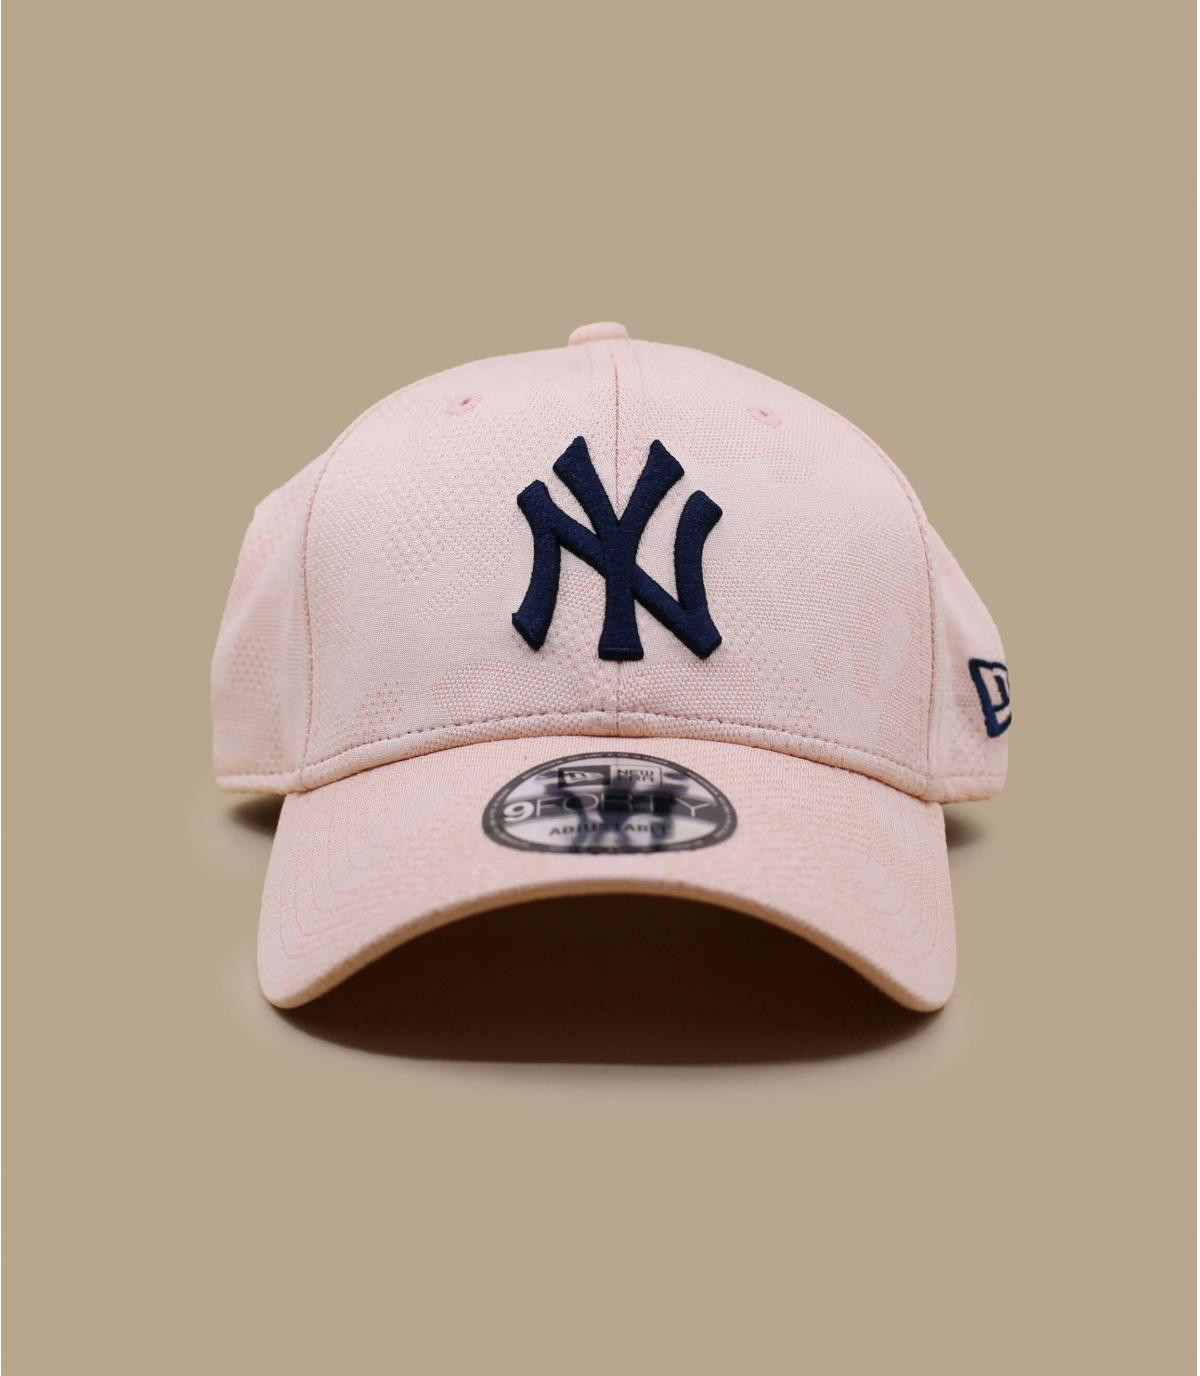 Détails Casquette Enginneered Plus NY 940 blush navy - image 2